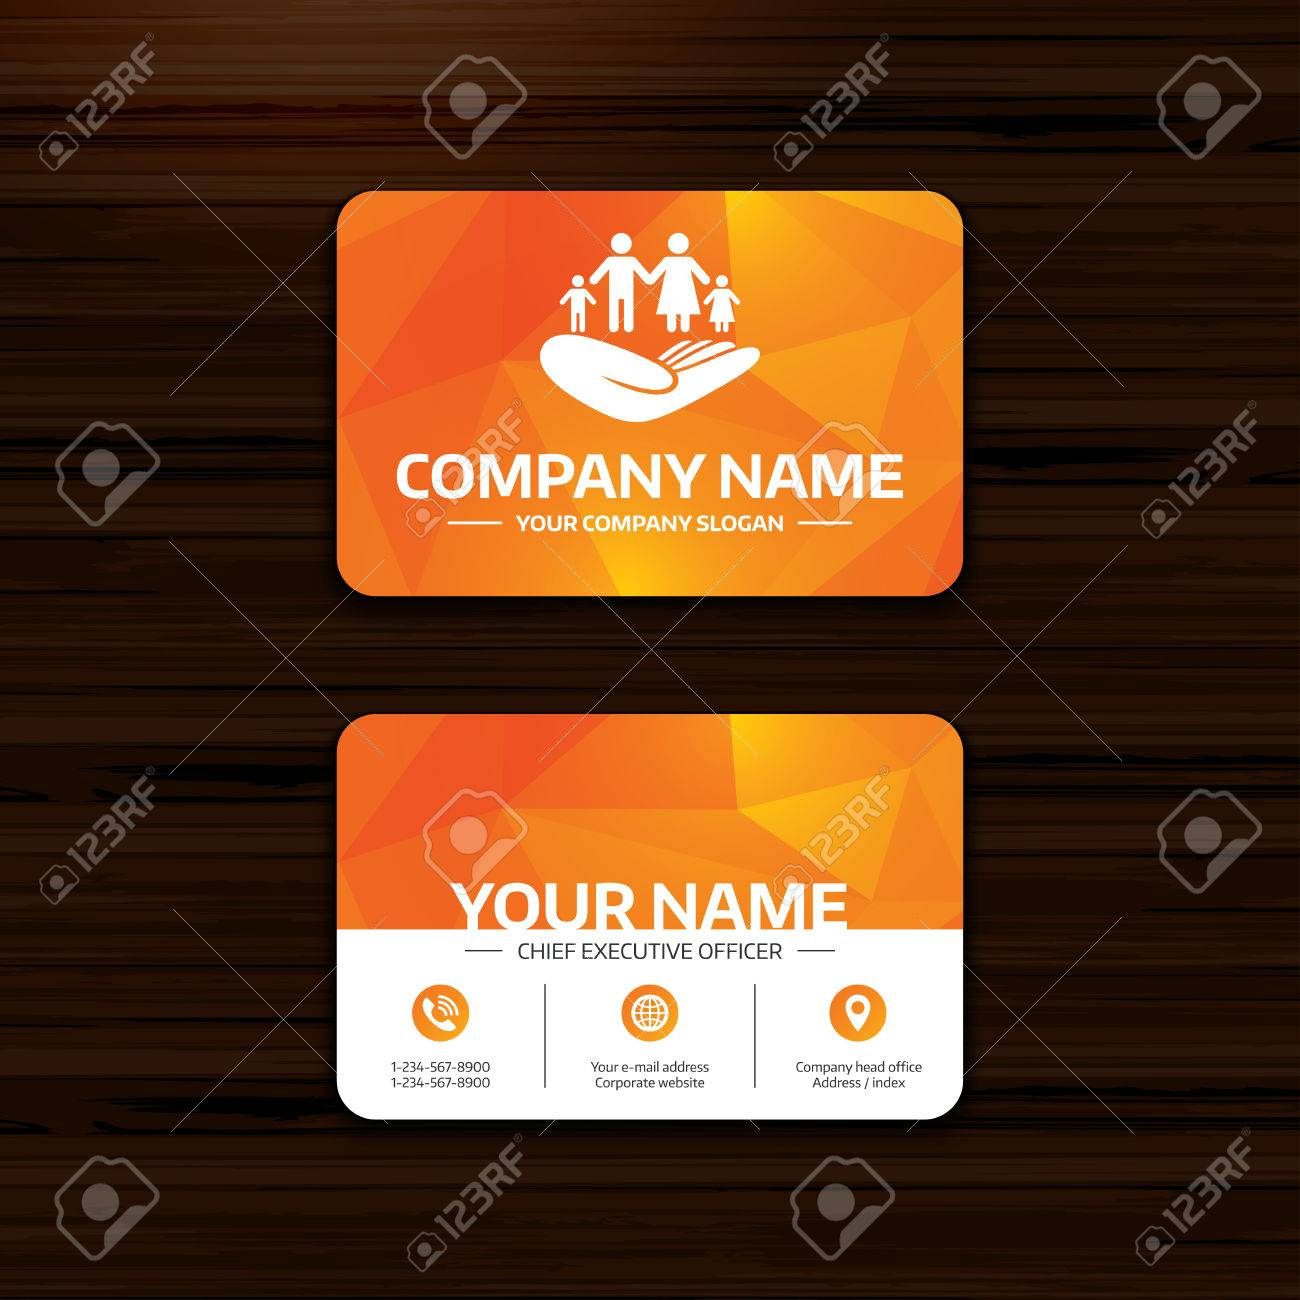 Business or visiting card template family life insurance sign business or visiting card template family life insurance sign hand holds human group symbol colourmoves